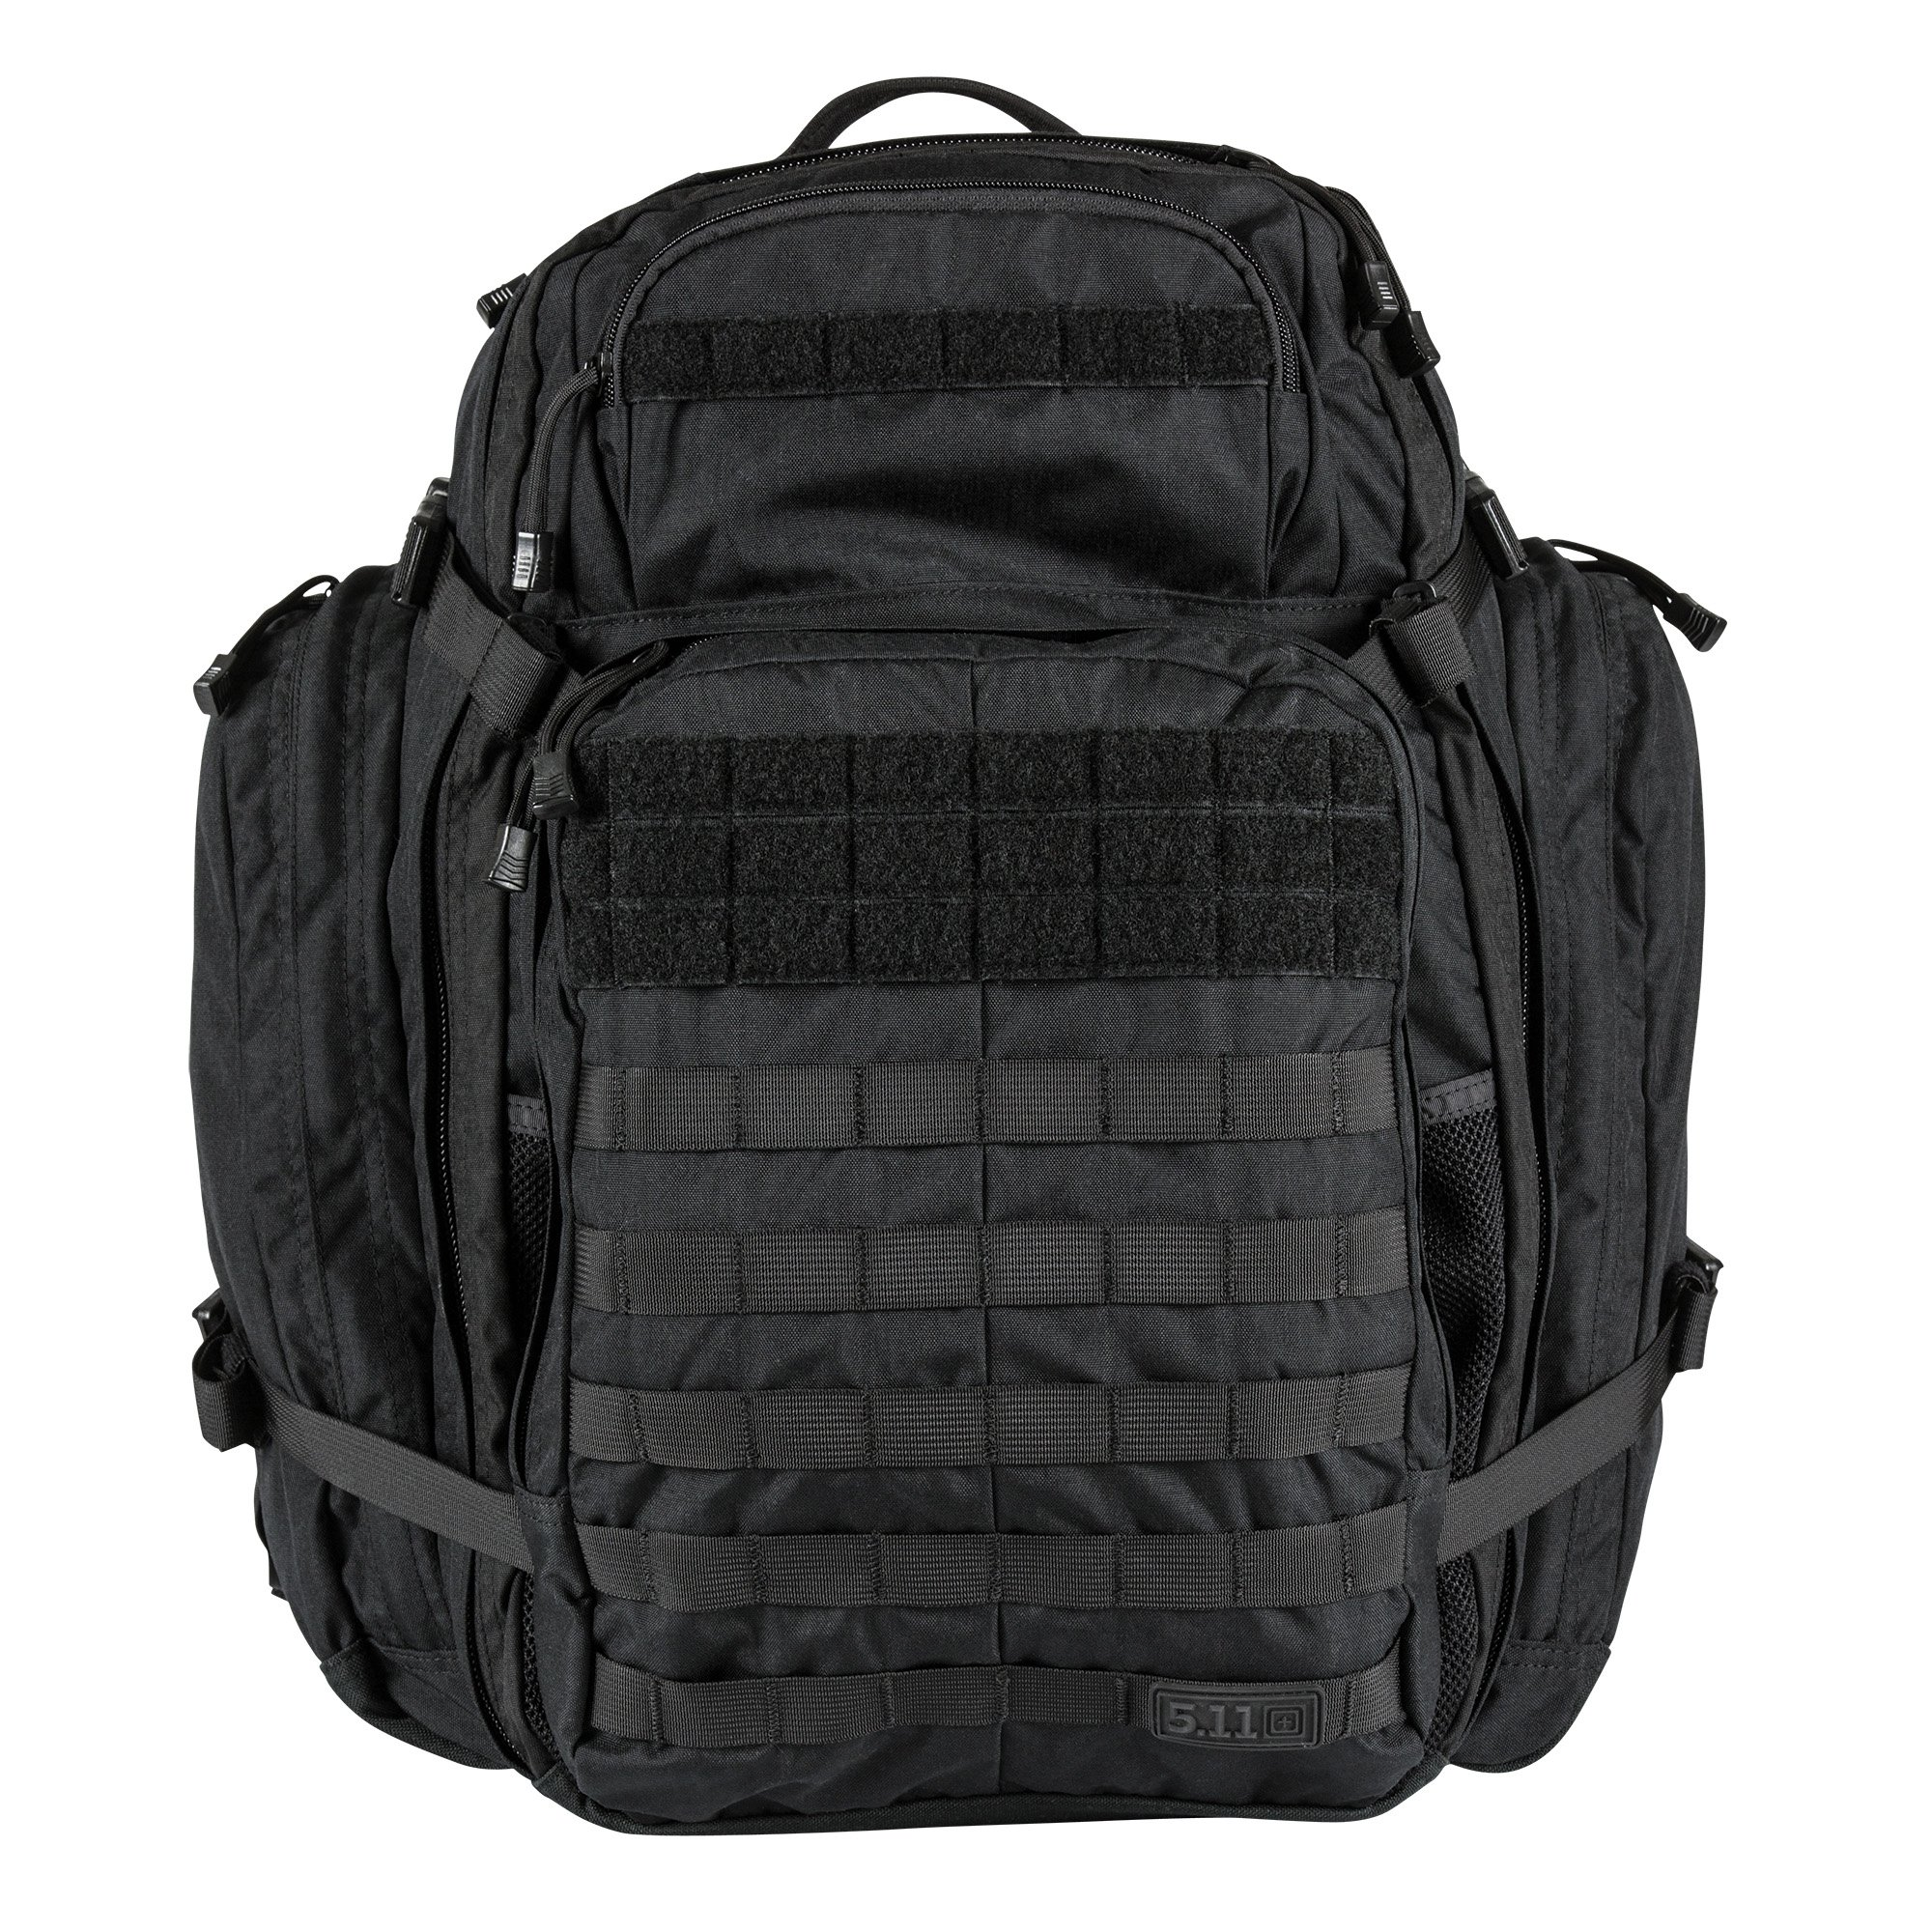 5.11 Rush USA 3-Day Tactical Backpack with Codura Nylon, MOLLE, Sunglass/Gadget Pocket, Hydration Pack Pocket - Style# 56361 - Black by 5.11